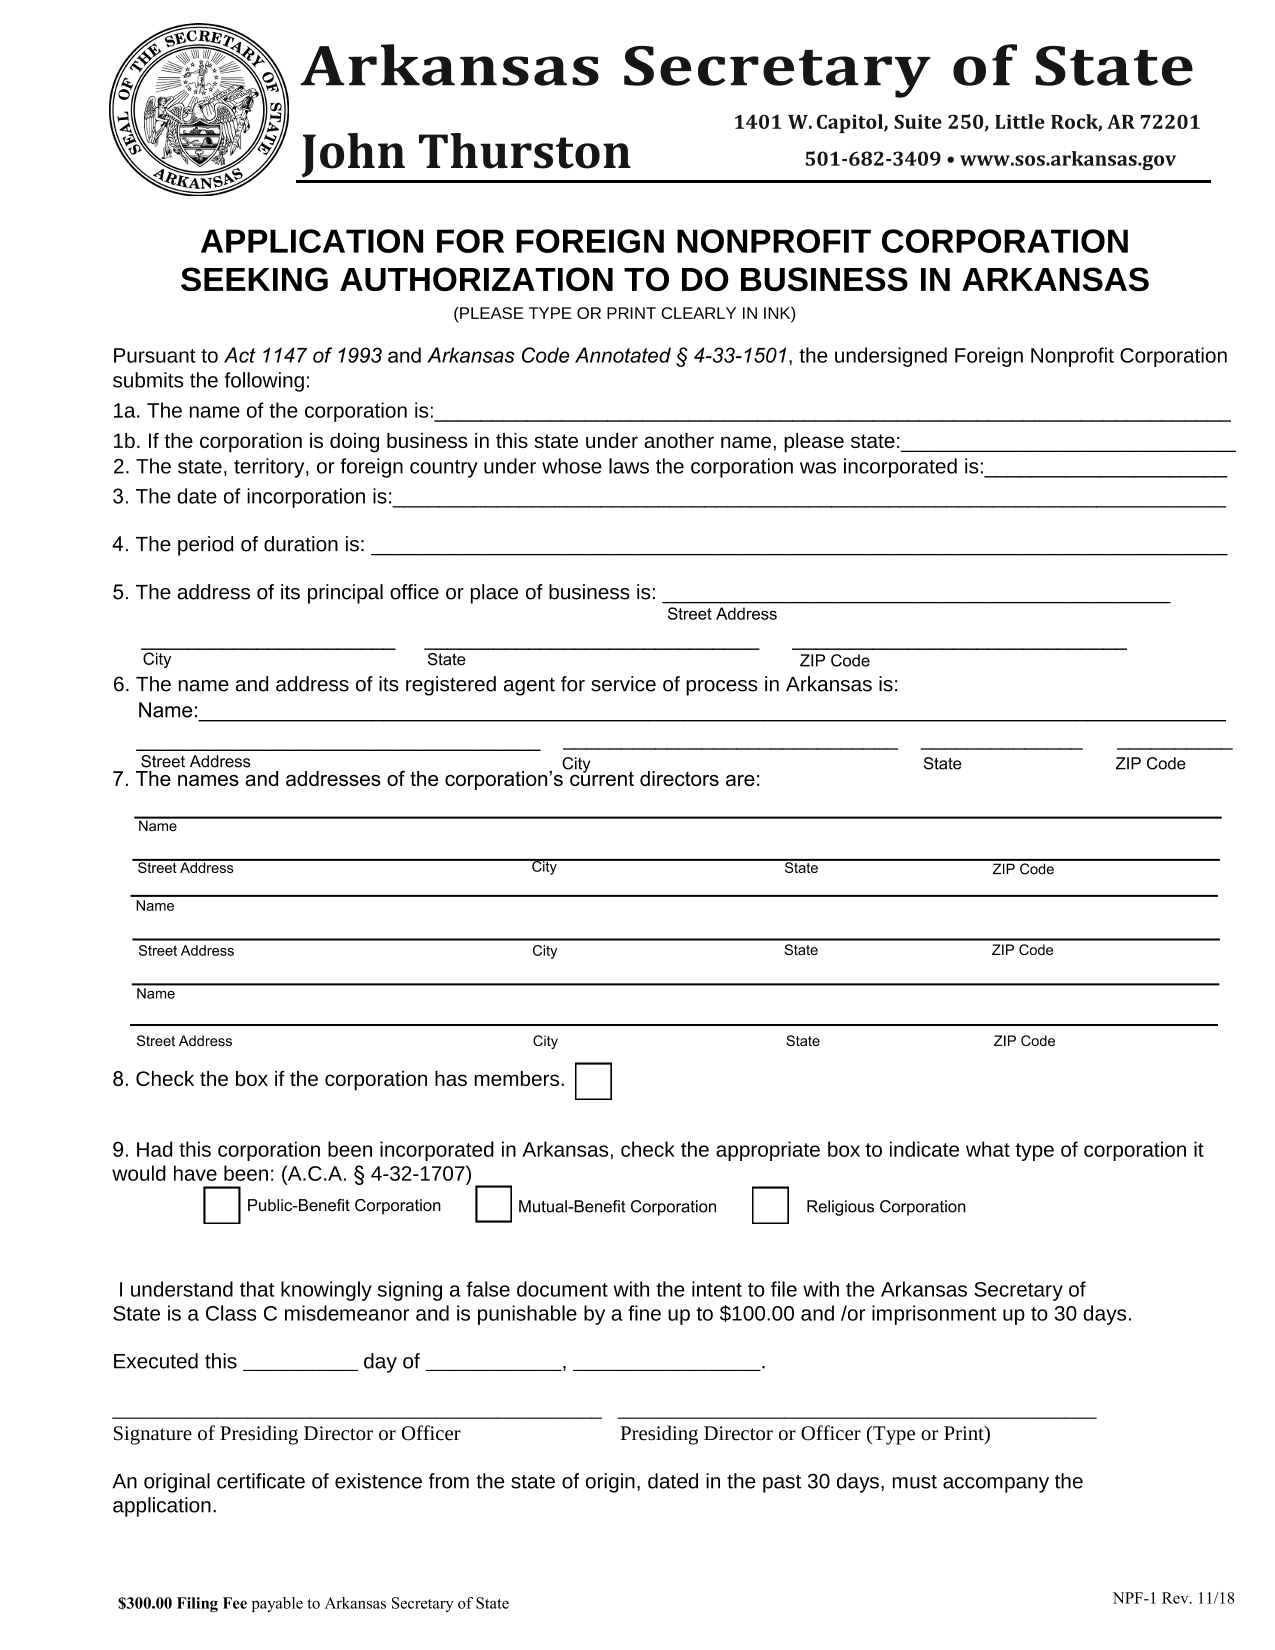 arkansas-foreign-nonprofit-application-for-foreign-nonprofit-seeking-authorization-to-do-business-in-arkansas